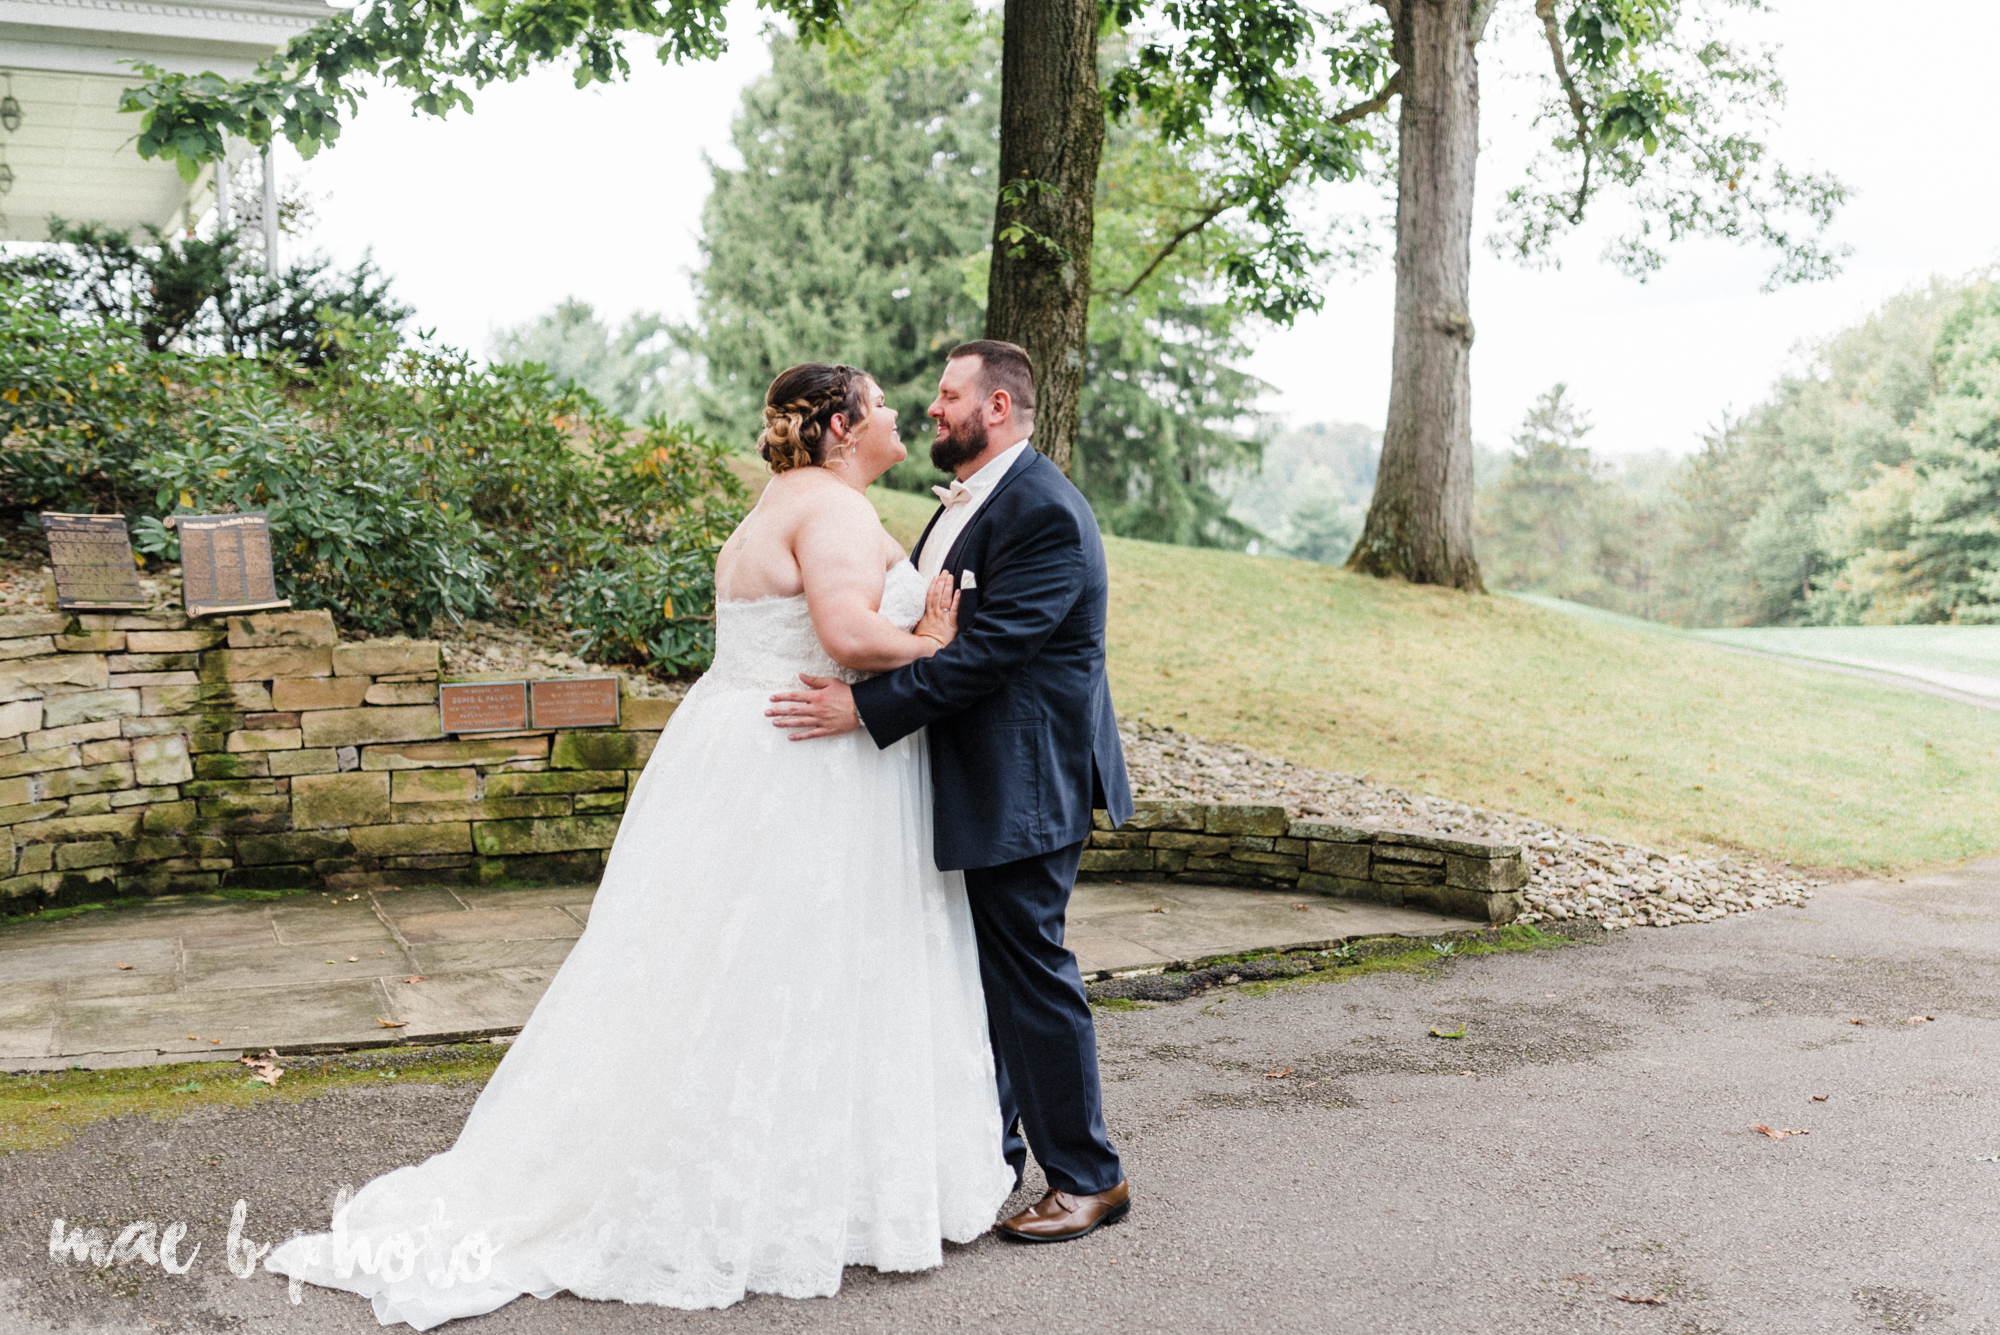 Kristina and ryan's personal vintage glam fall wedding at disalvo's station restaurant and the arnold palmer latrobe country club in latrobe, pa photographed by youngstown wedding photographer mae b photo-29.jpg